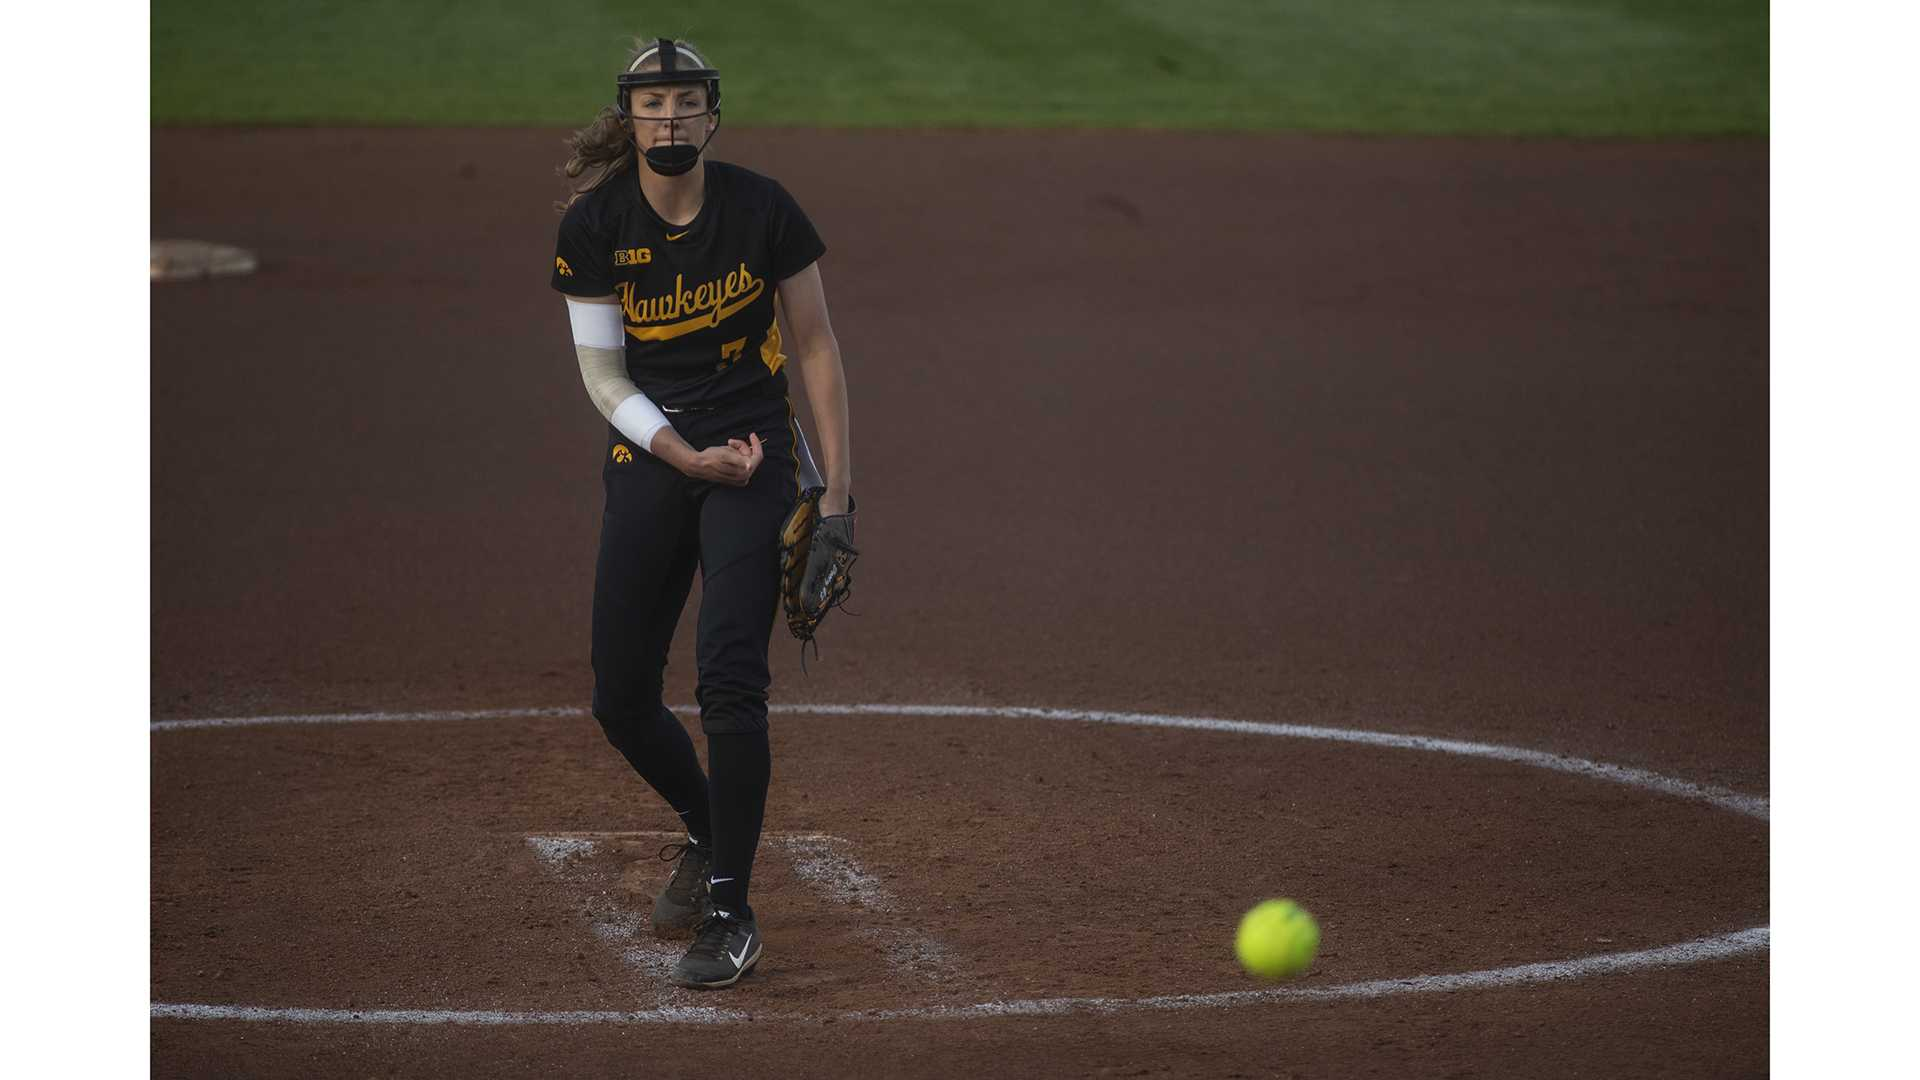 Iowa starting pitcher Alison Doocy delivers a pitch during Iowa's Big Ten tournament game against Ohio State at the Goodman Softball complex in Madison, WI. The Hawkeyes defeated the Buckeyes 5-1. (Nick Rohlman/The Daily Iowan)